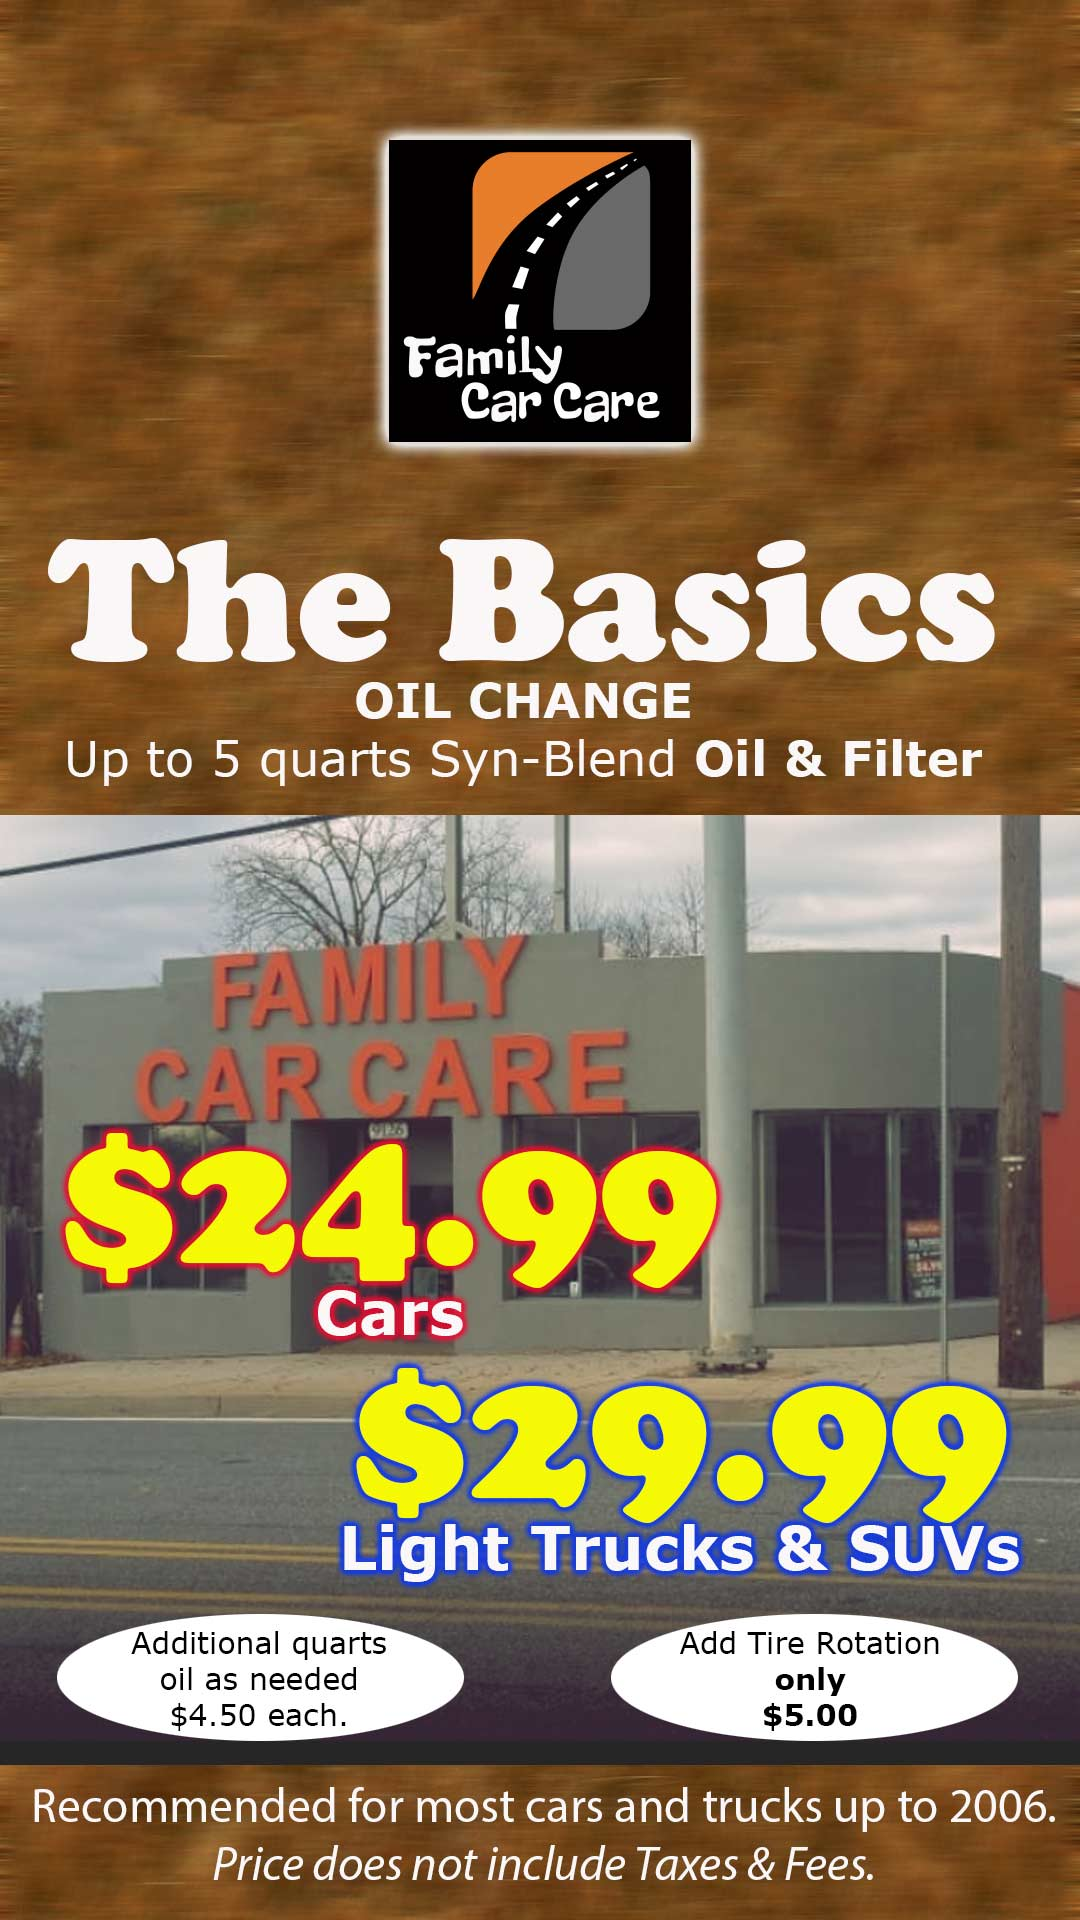 The Basic Oil Change